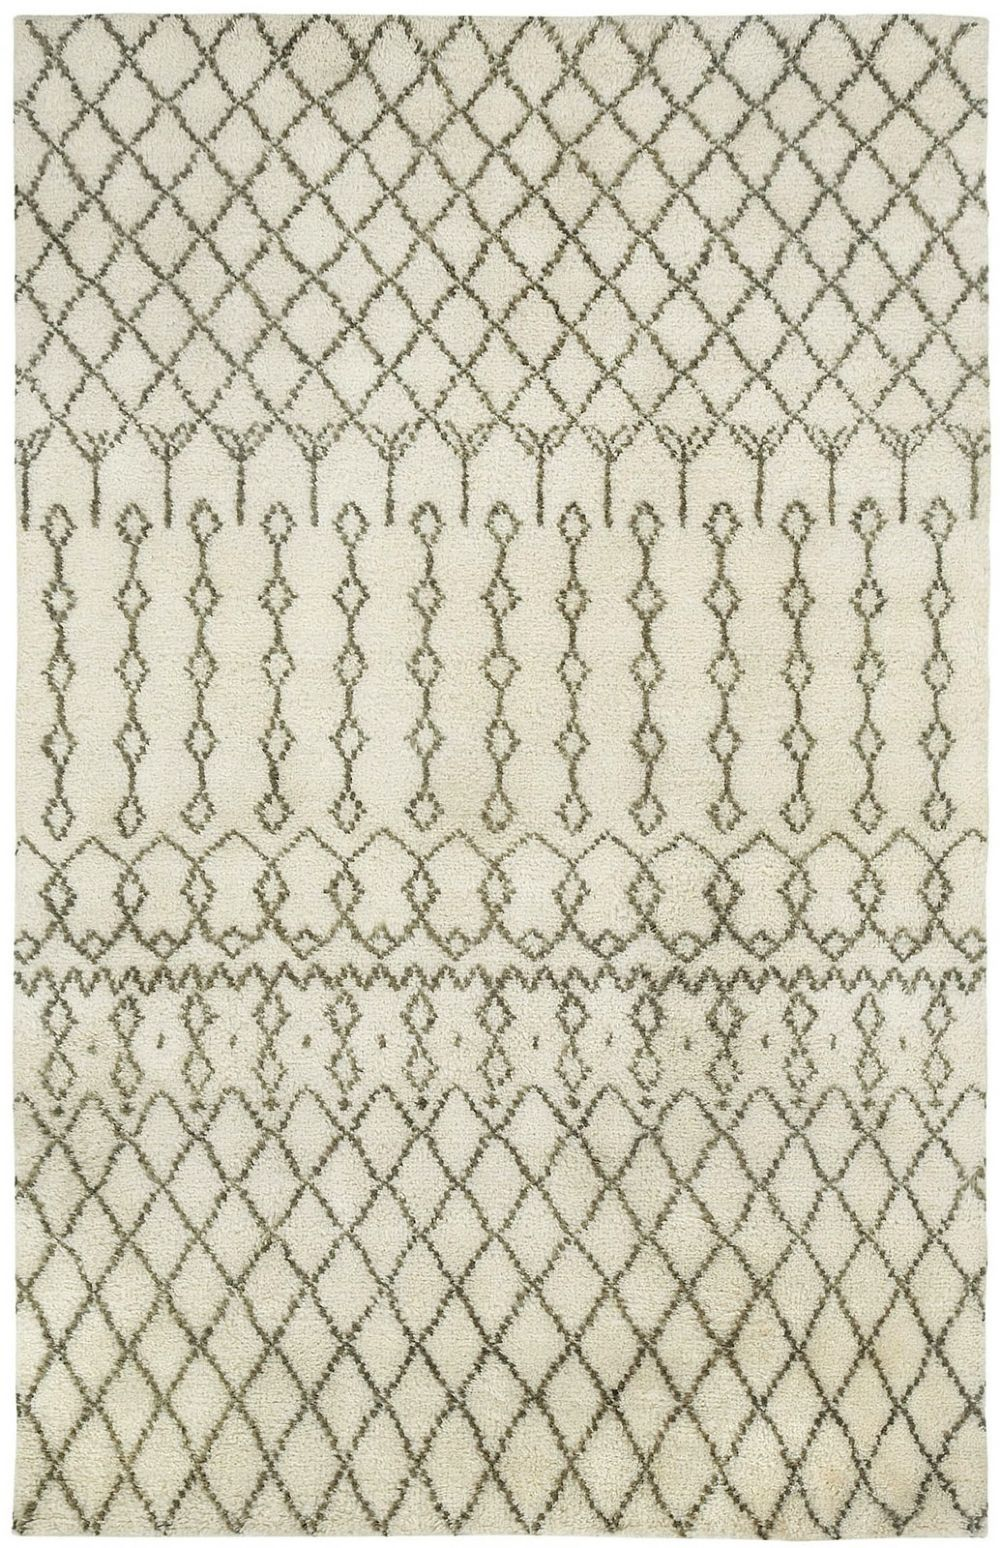 capel fortress-trellis contemporary area rug collection